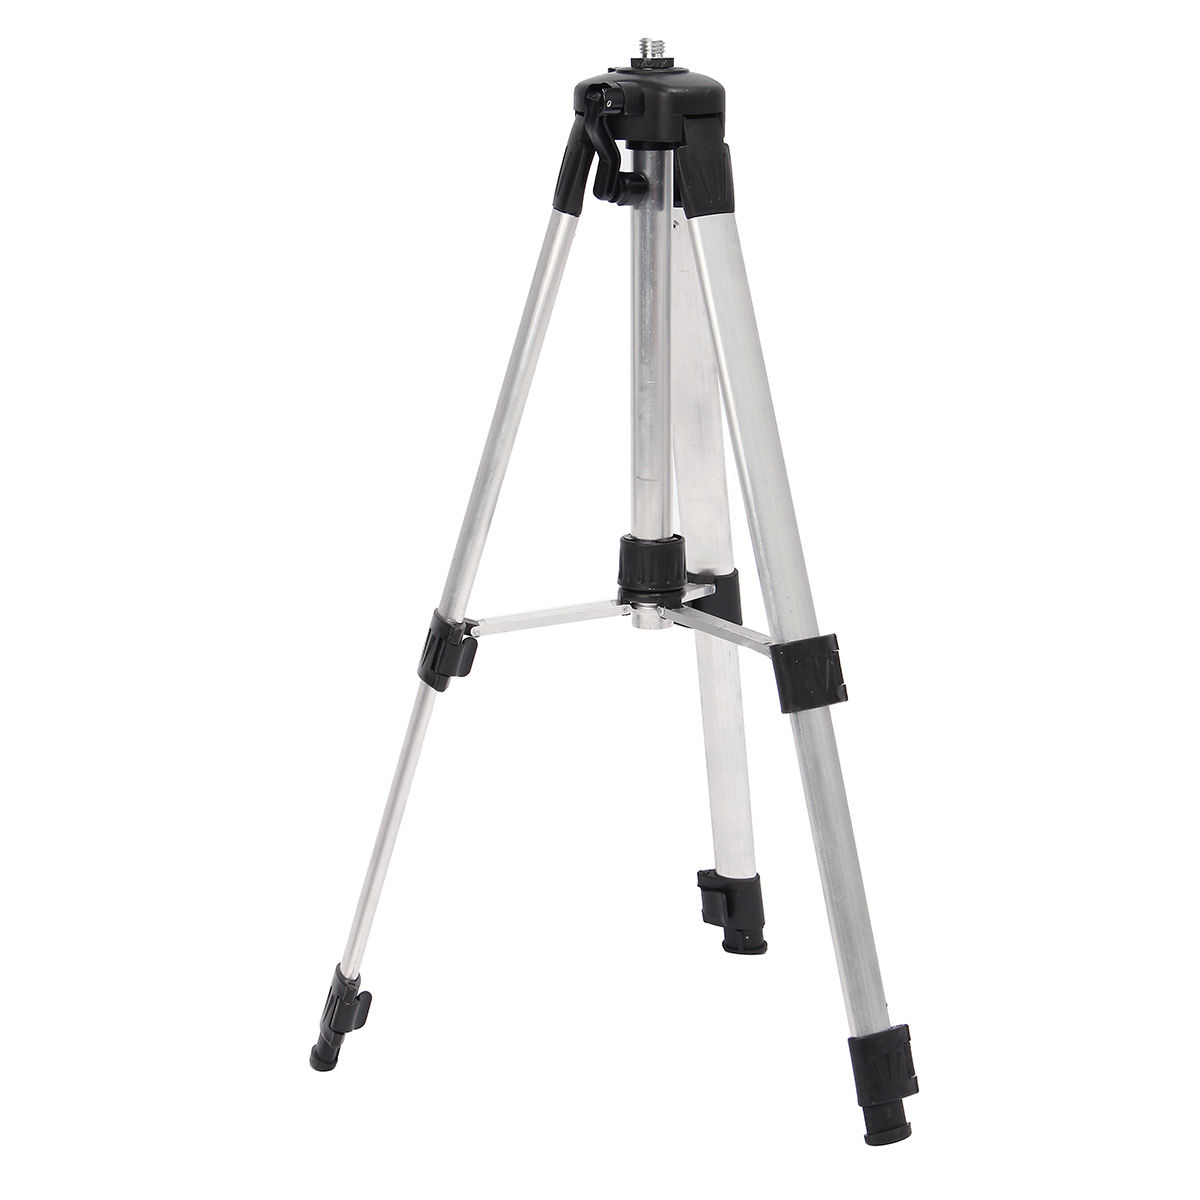 1.2M Tripod Level Stand for Automatic Self Leveling Laser Level Measurement Tool